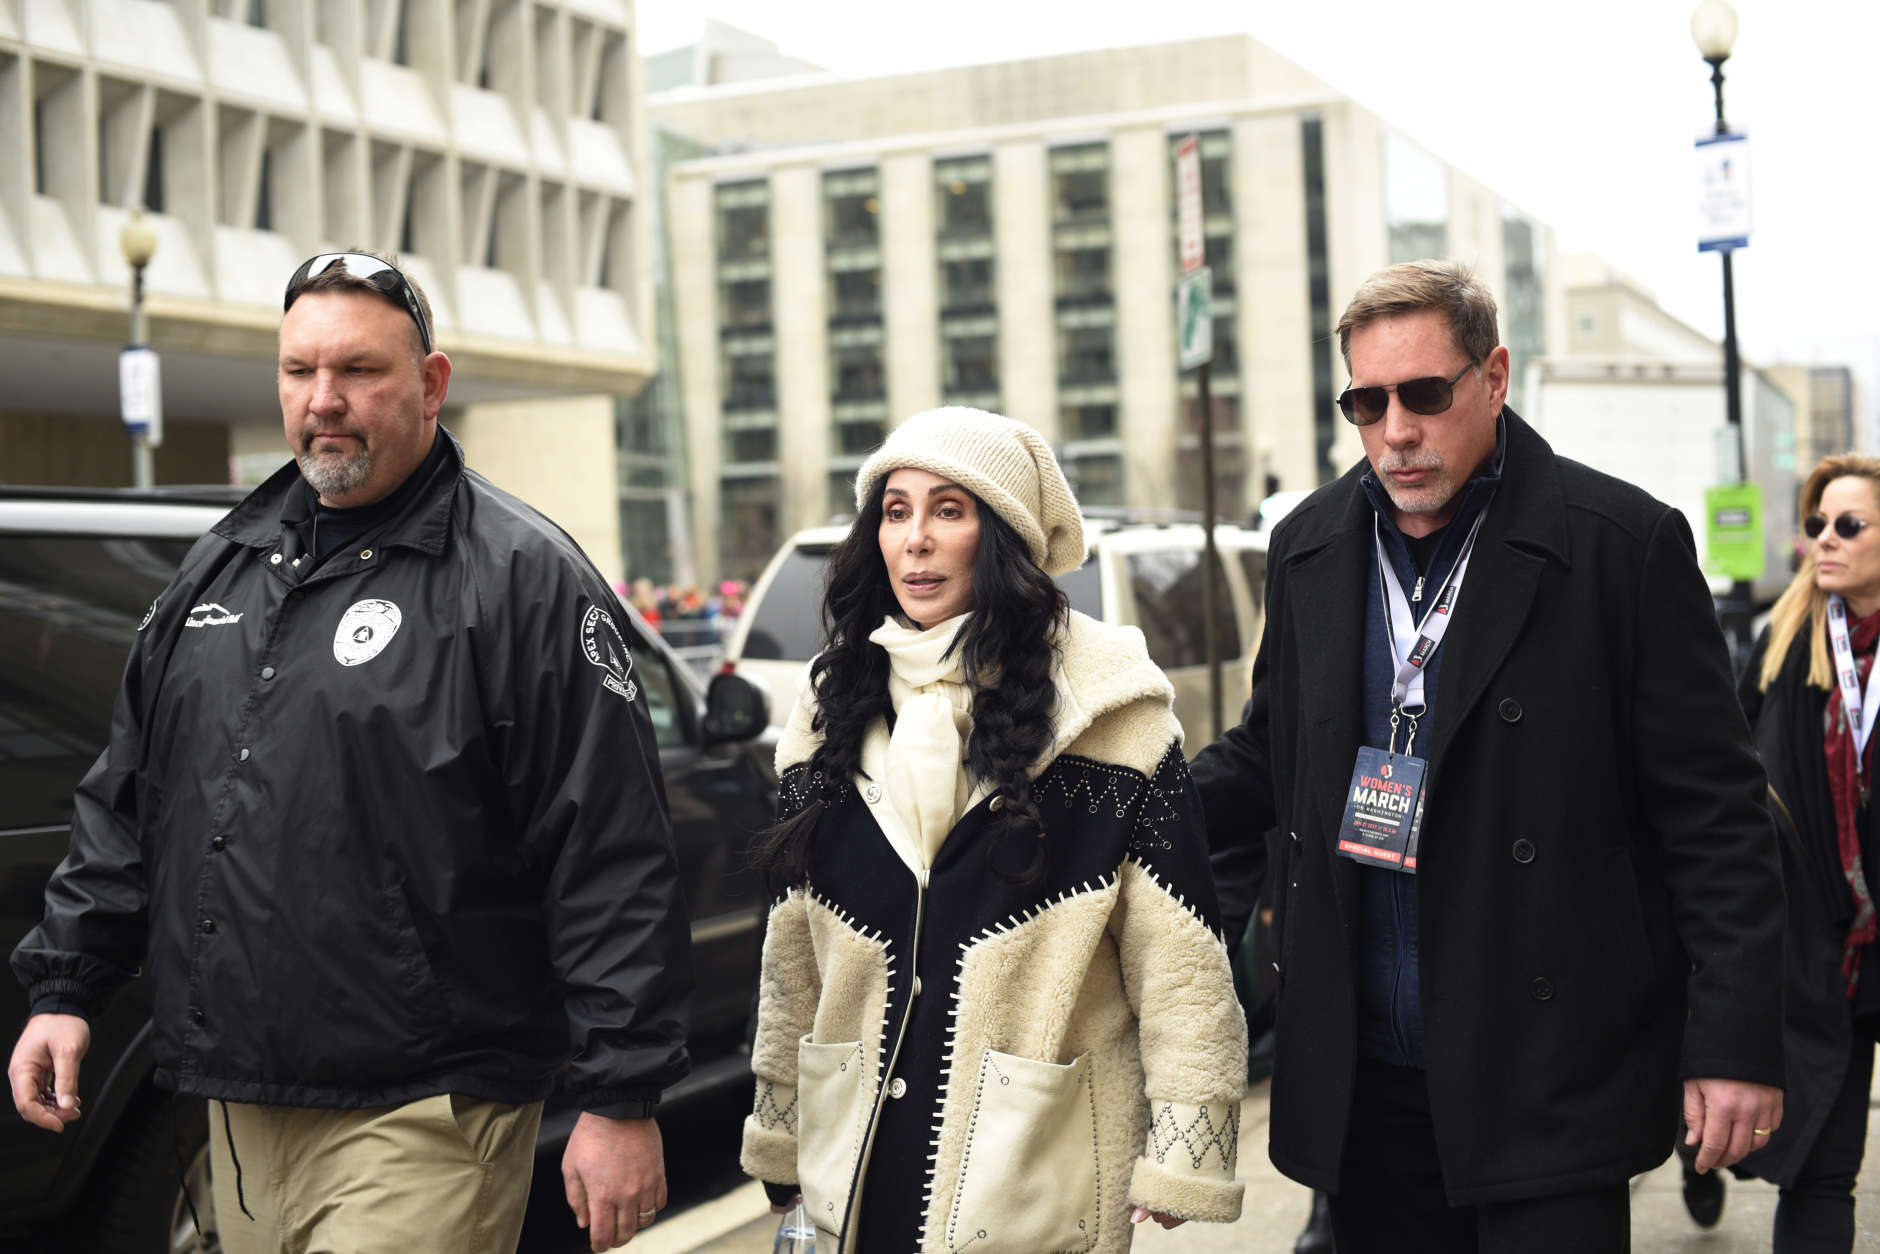 Cher arrives for the Women's March on Washington on Independence Ave. on Saturday, Jan. 21, 2017 in Washington. Thousands are massing on the National Mall for the Women's March, and they're gathering, too, in spots around the world. (AP Photo/Sait Serkan Gurbuz)